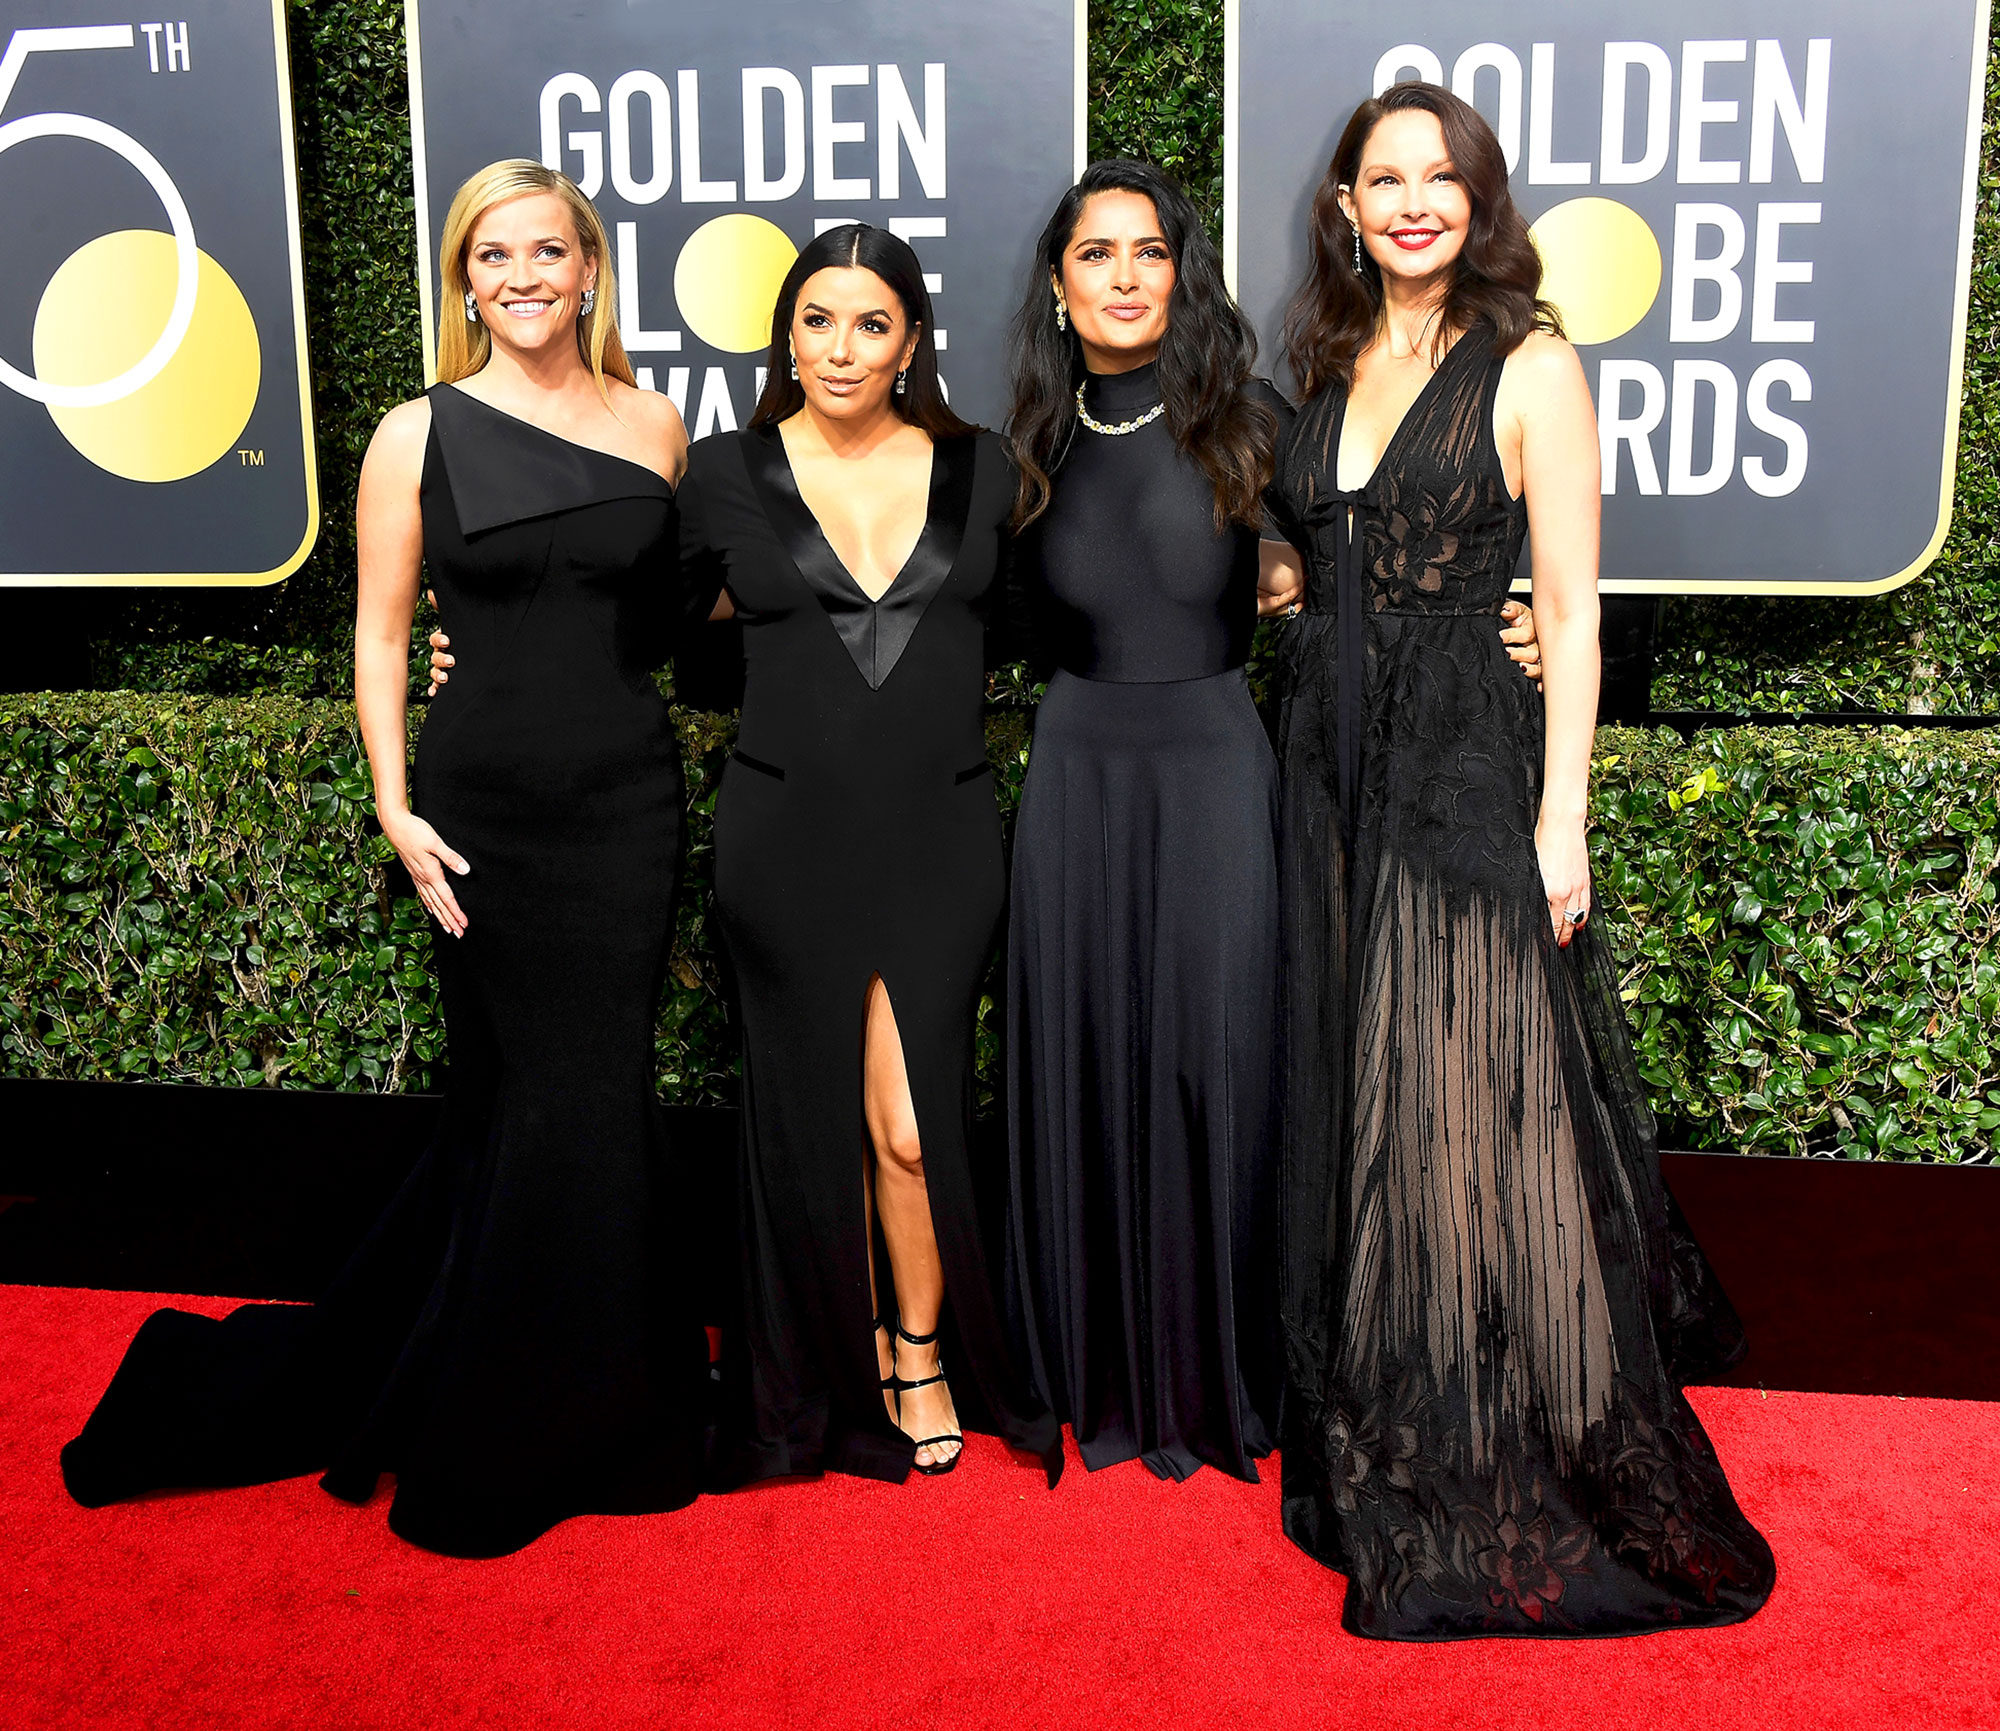 15 Celebs Who Wore Black To The Golden Globes pictures